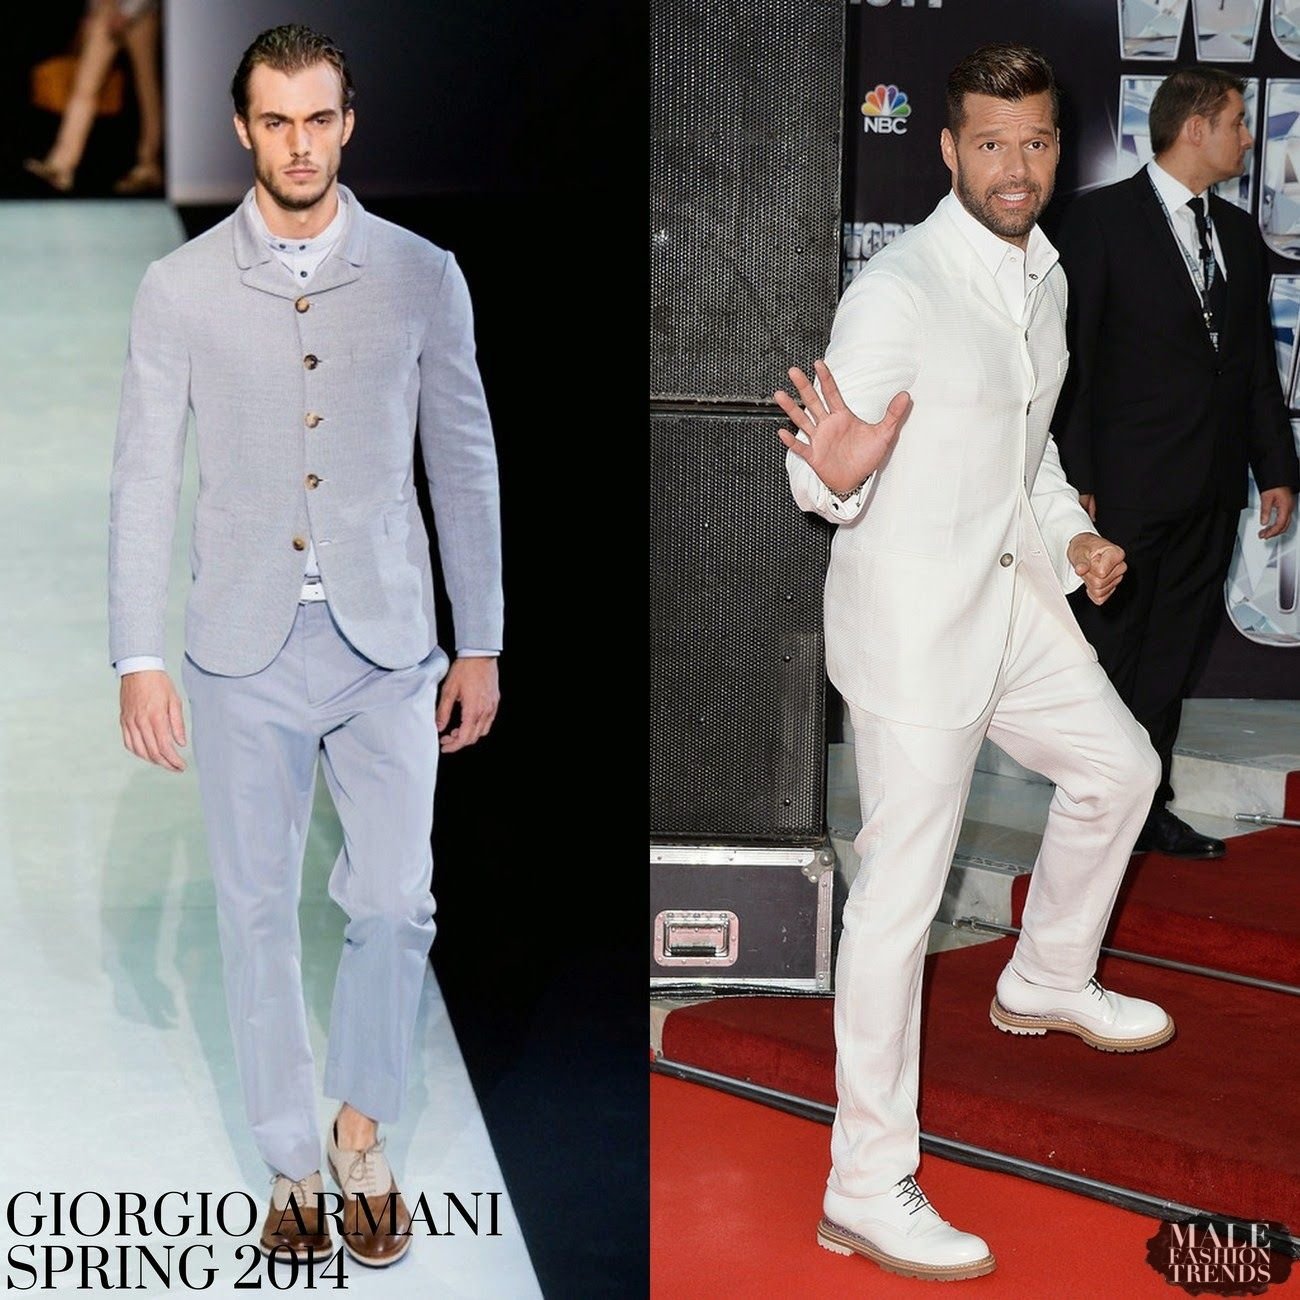 Ricky Martin en Giorgio Armani - World Music Awards 2014 http://bit.ly/1gylGi8